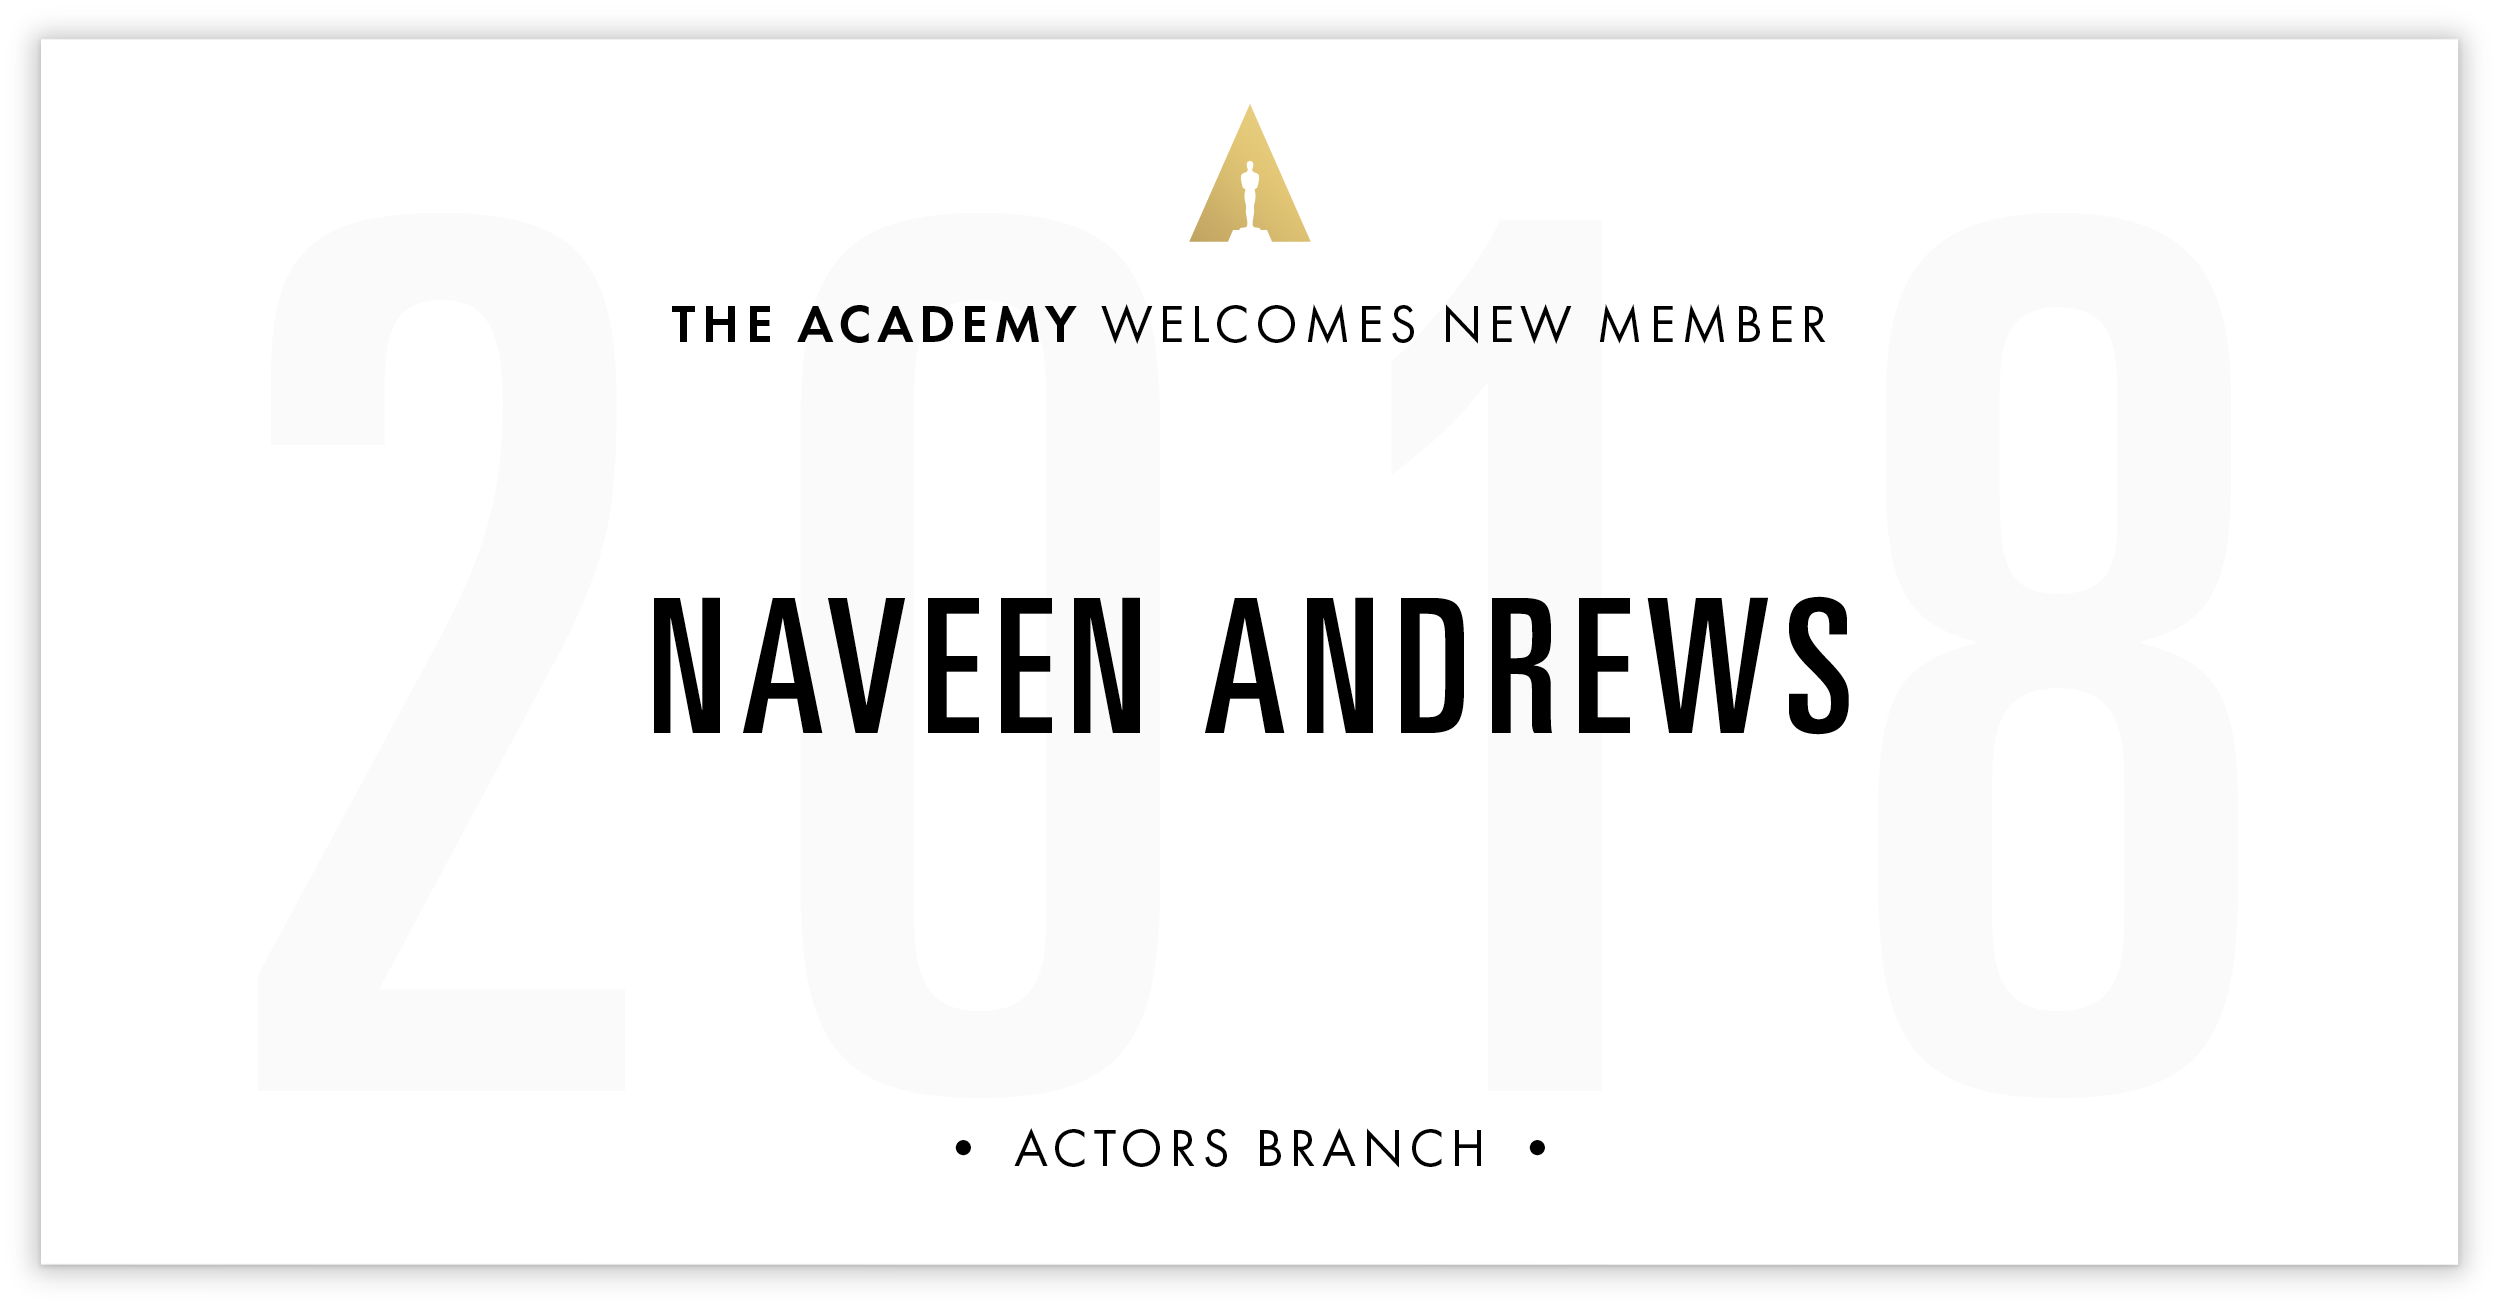 Naveen Andrews is invited!